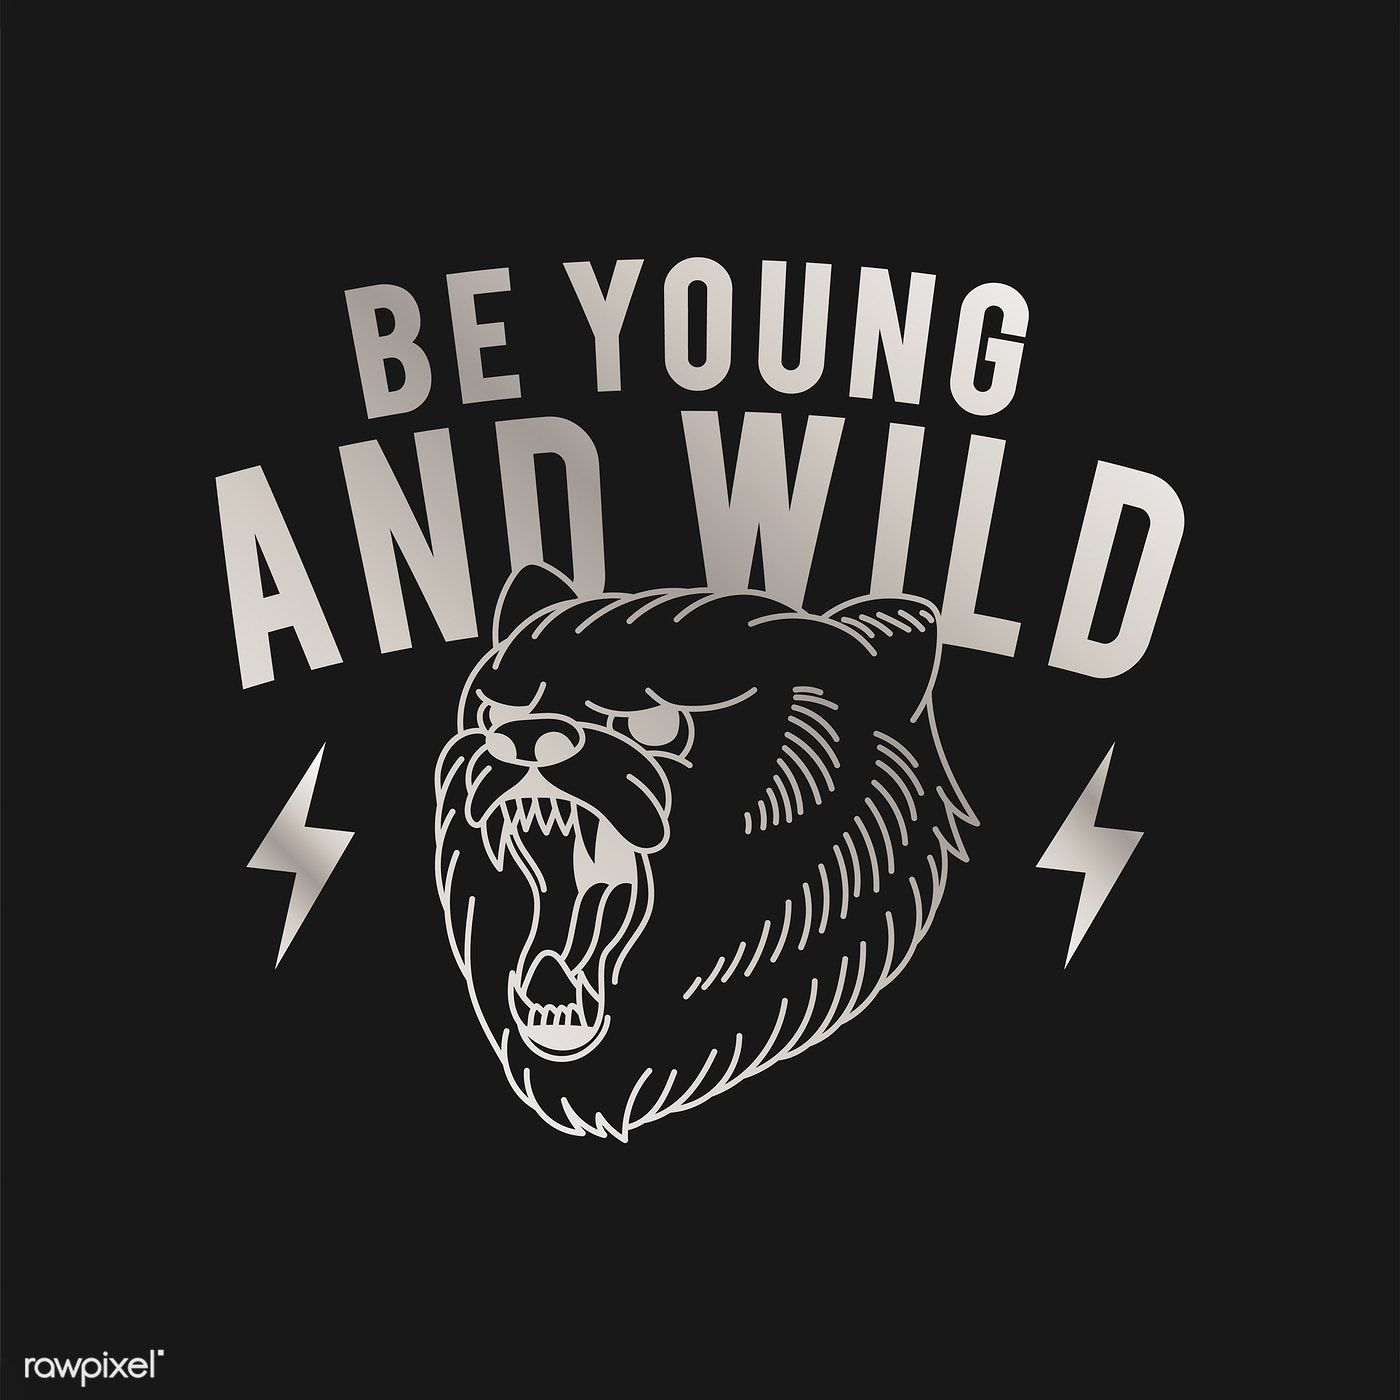 Be young and wild logo vector free image by